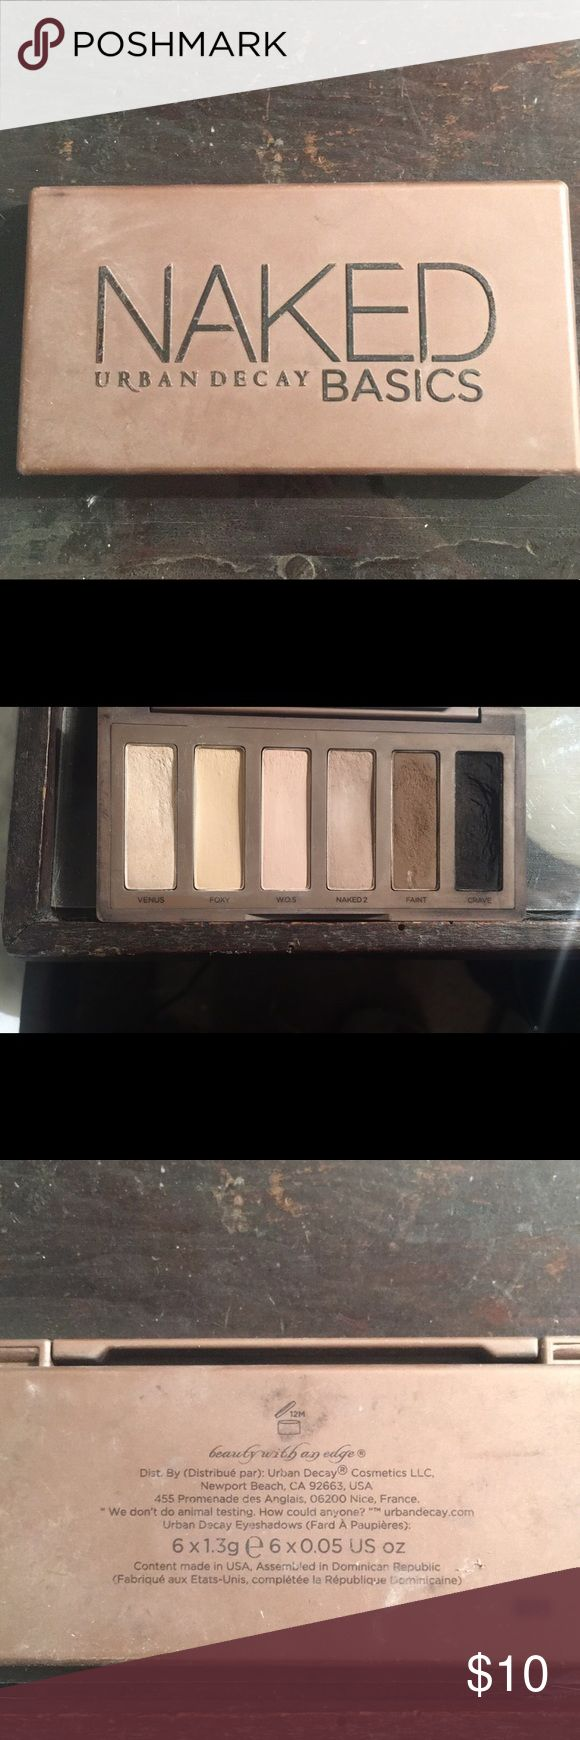 Urban decay naked basics palette Some signs of wear. Black shadow is a little cracked (see pic above) but overall in good condition. Only used a handful of times. Outside got dirty from being in my makeup box. Have not hit pan on any shadow. Urban Decay Makeup Eyeshadow